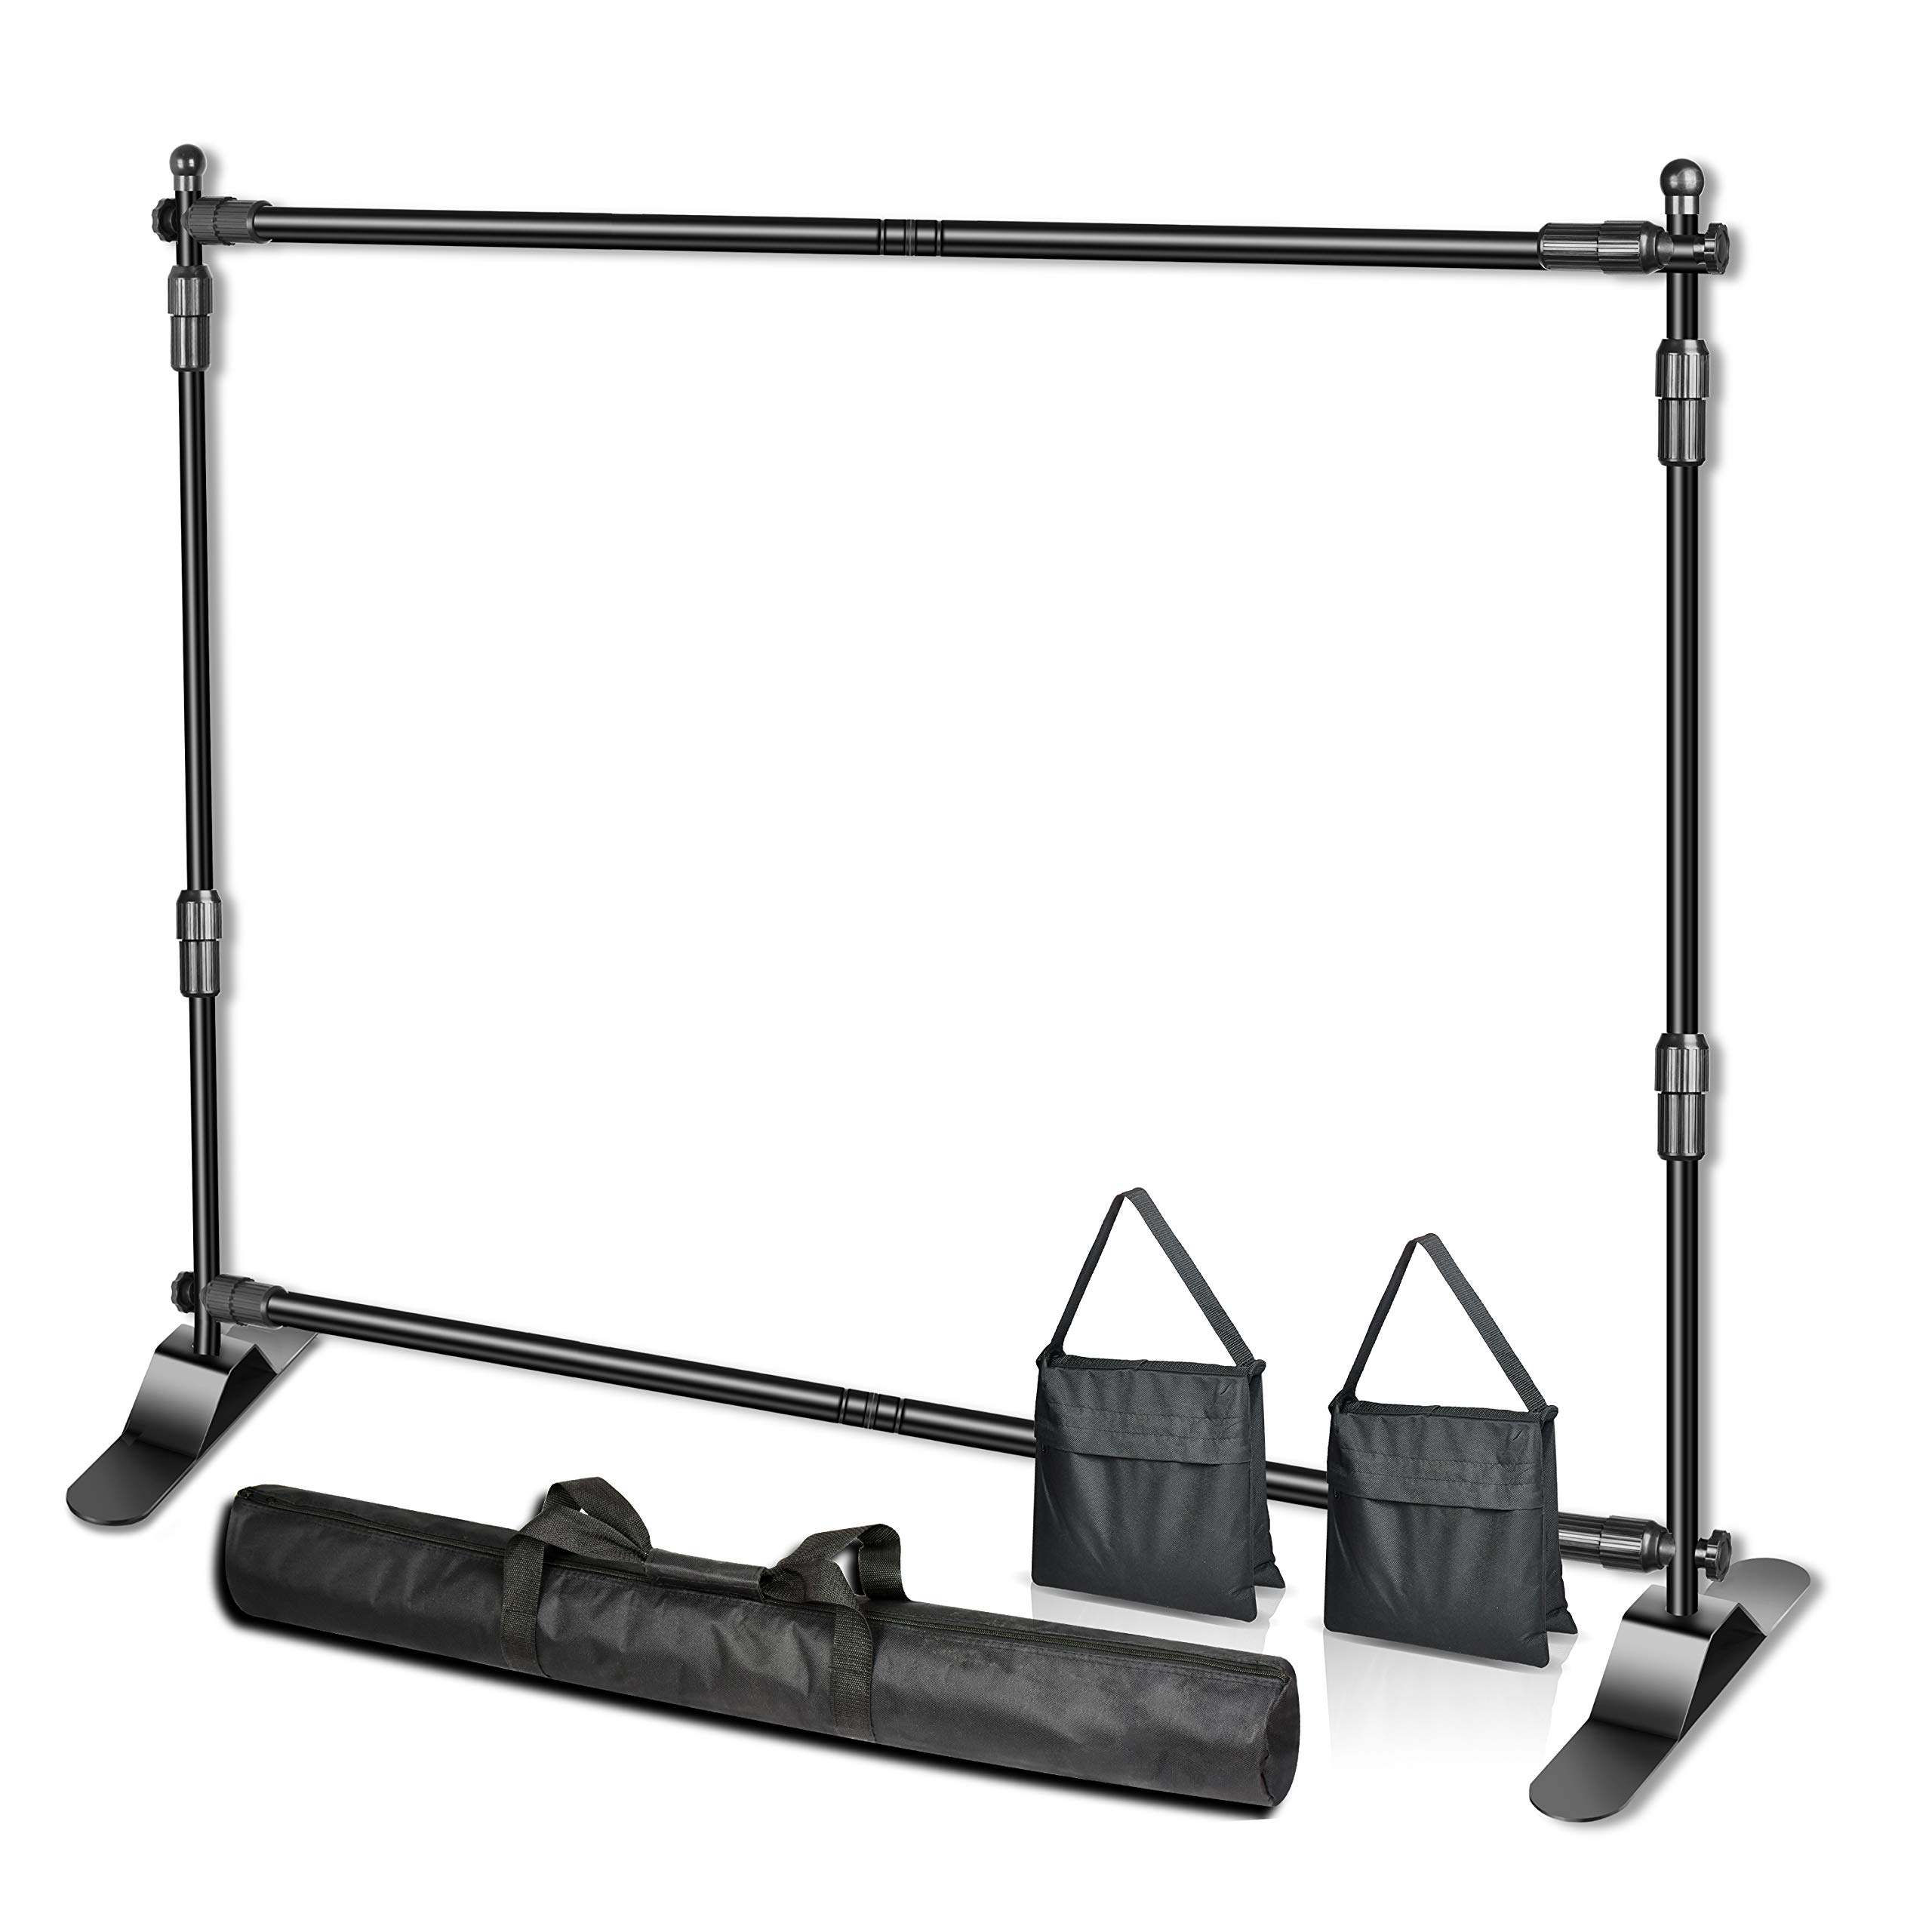 Emart 8 x 8 ft Adjustable Telescopic Tube Backdrop Banner Stand, Heavy Duty Step and Repeat Background Stand Kit for Photography Backdrop and Trade Show Display